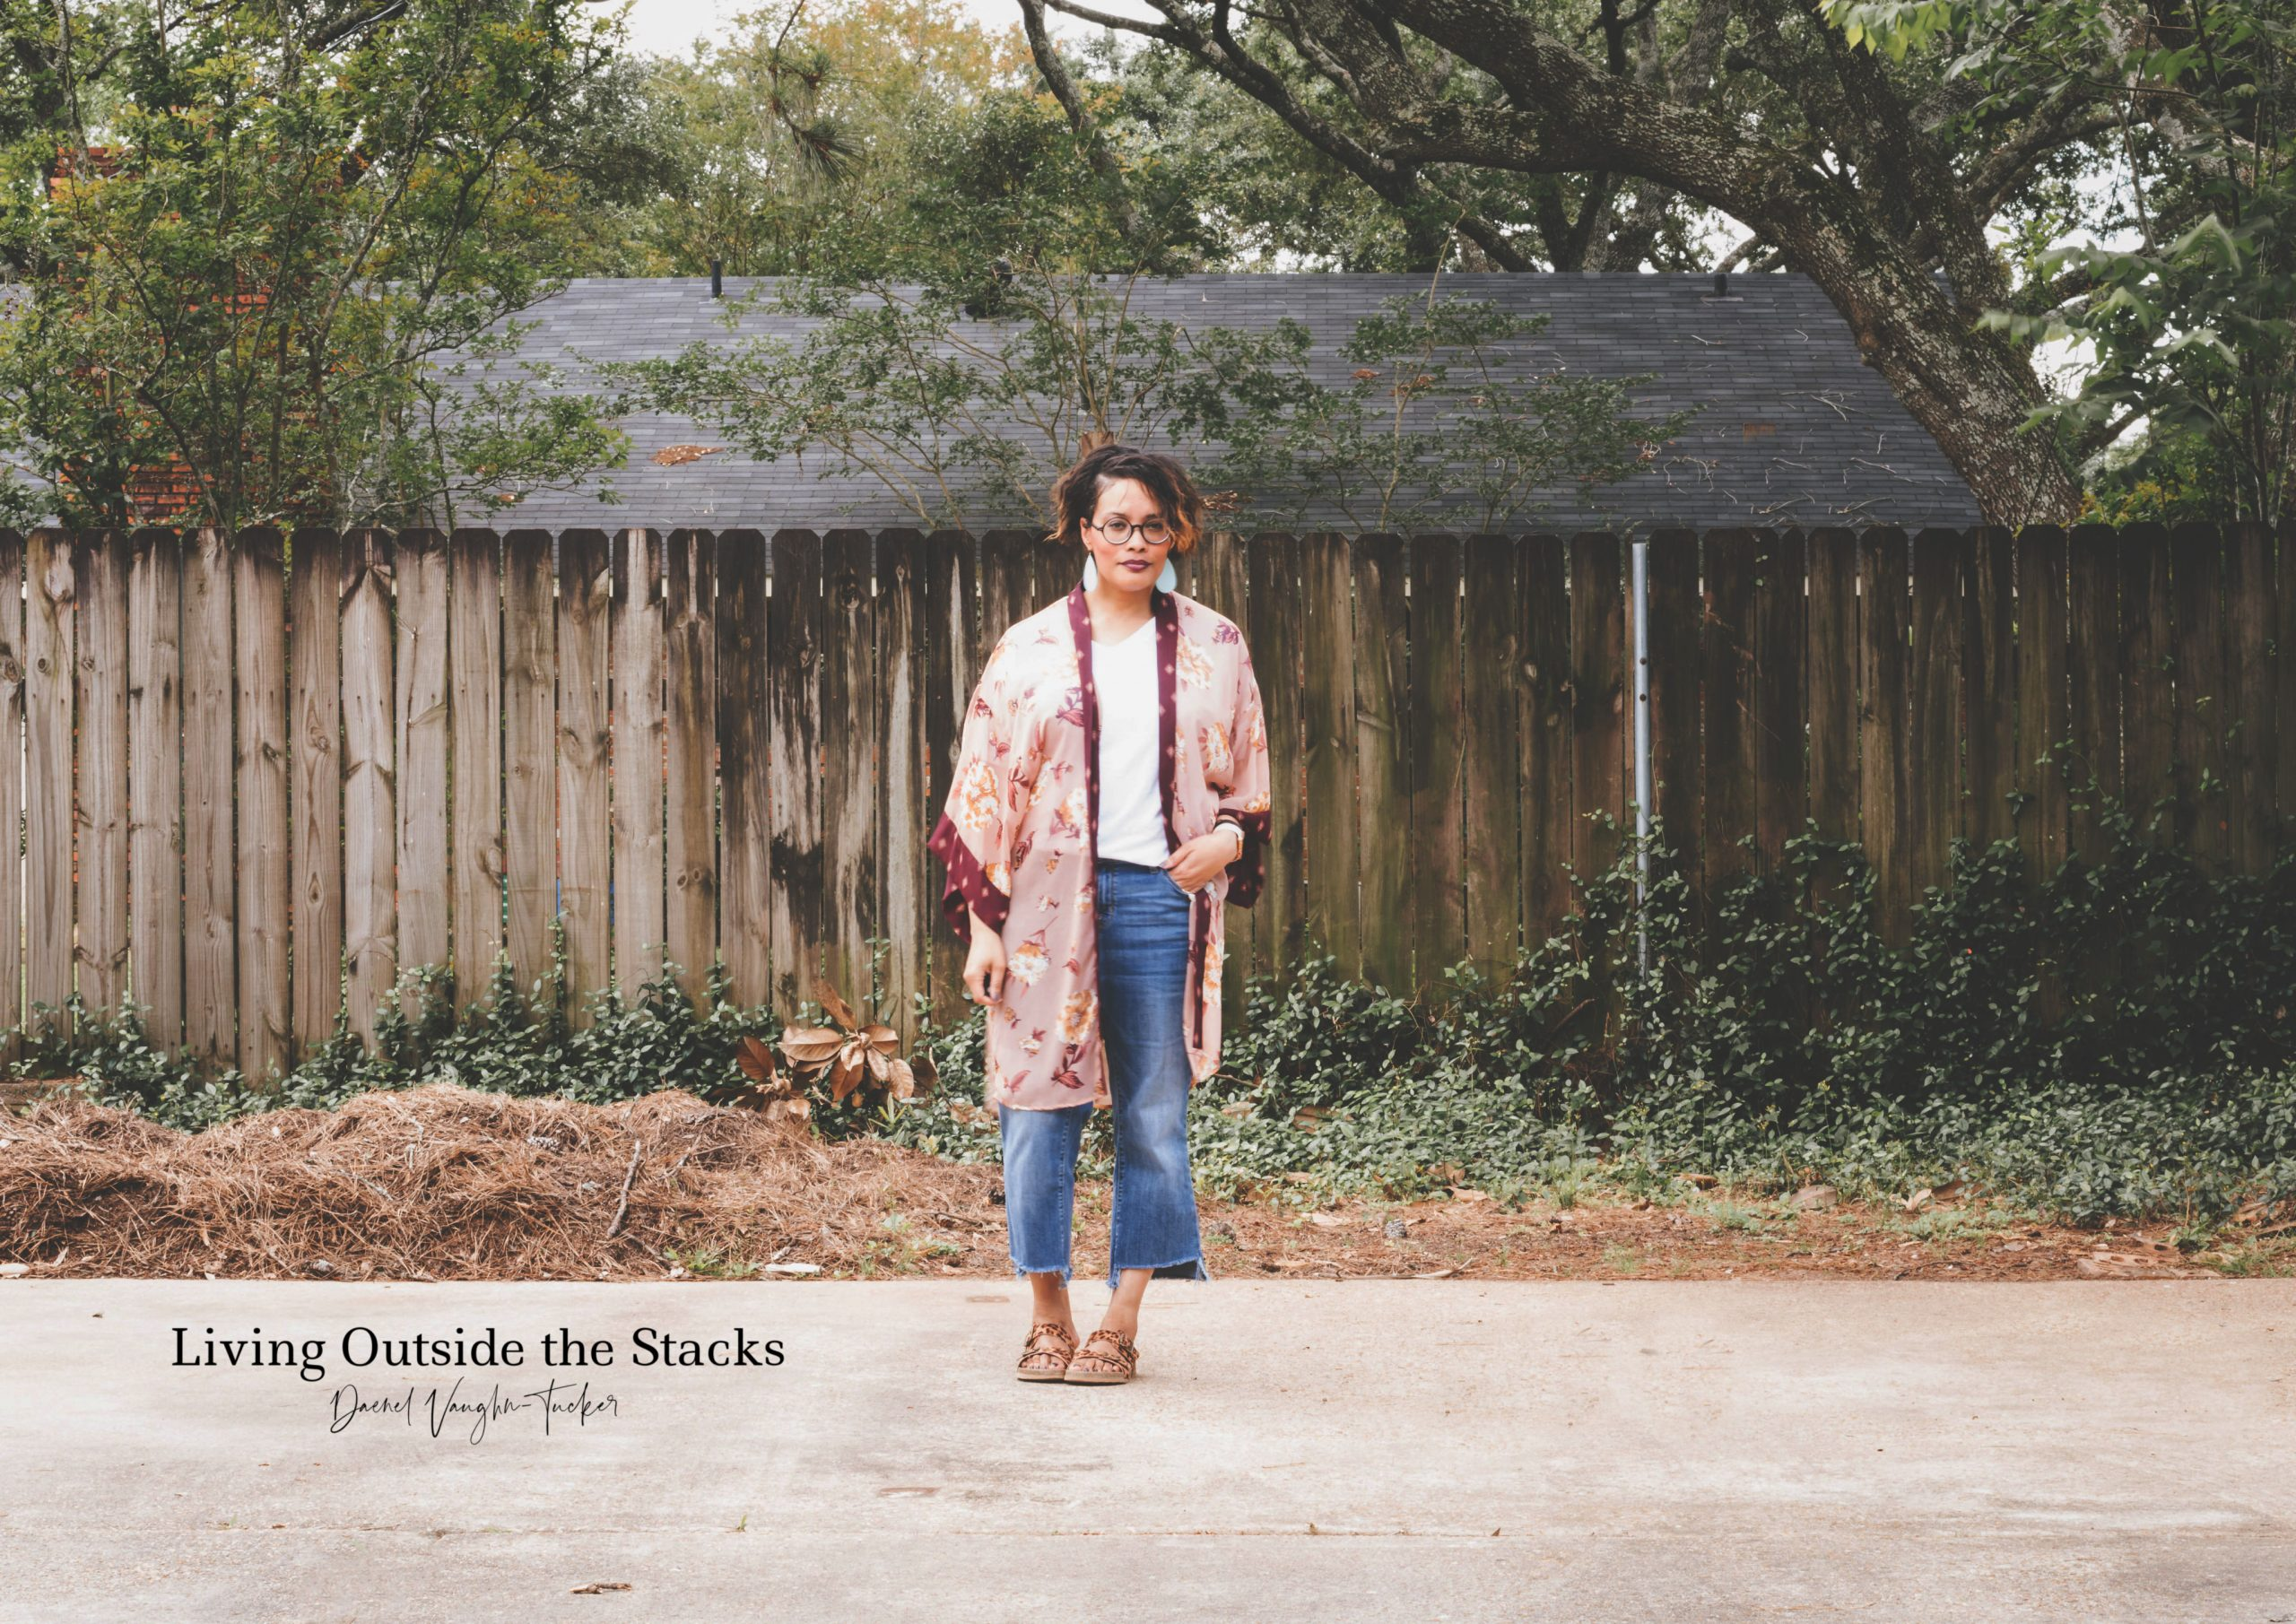 Kimono White Tee Jeans and Sandals {living outside the stacks}